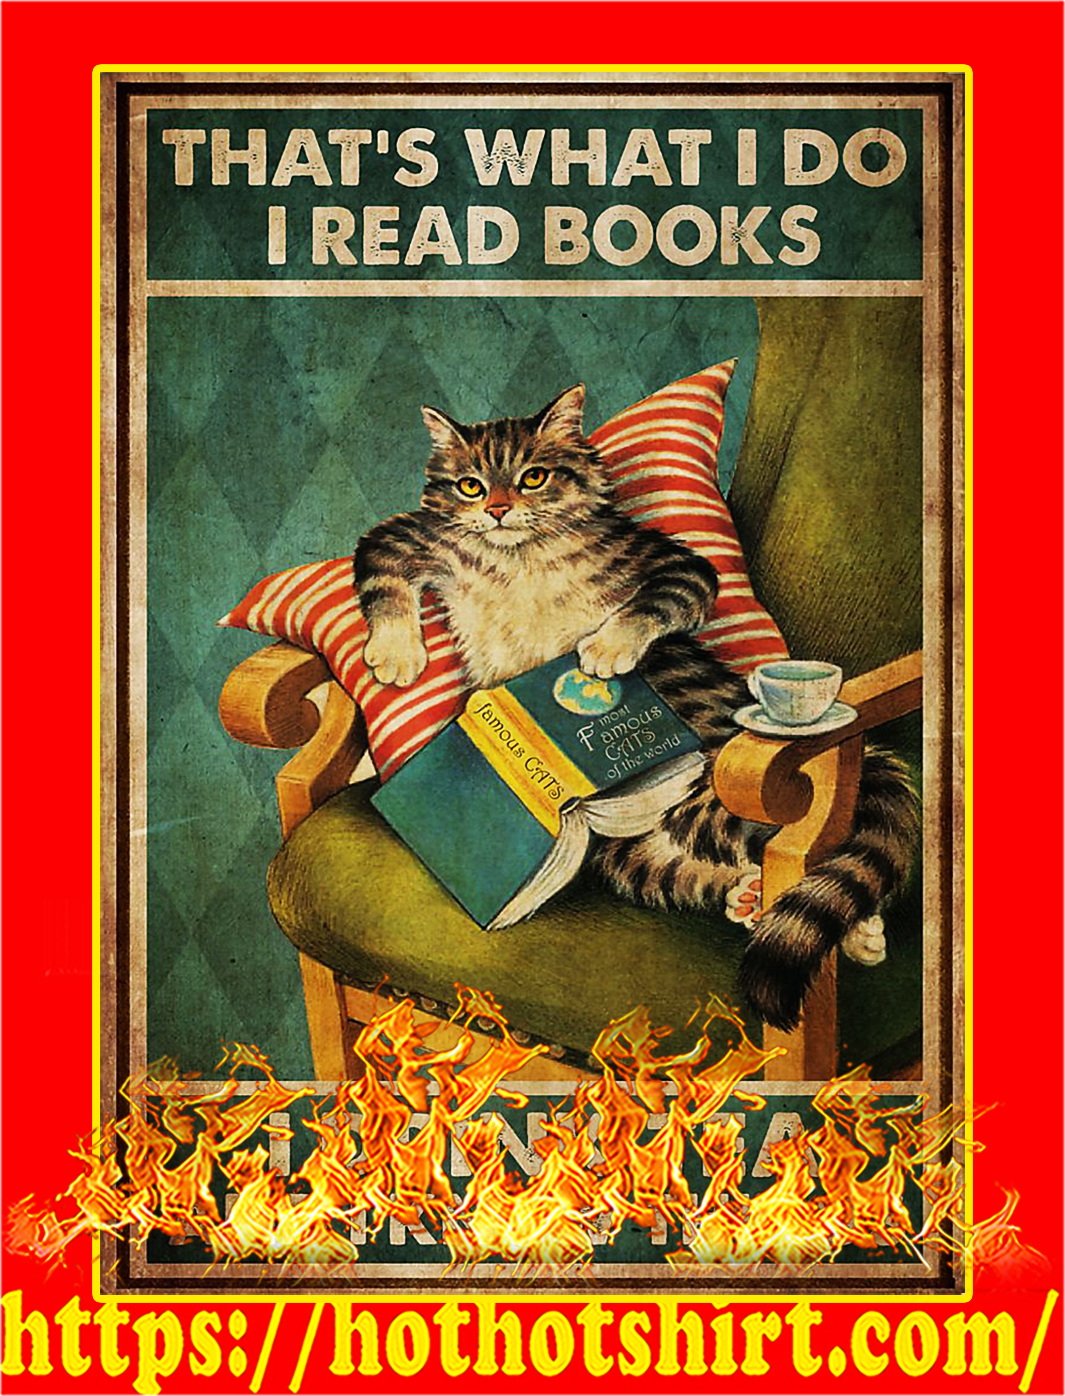 Cat That's what i do i read books i drink tea poster - A4